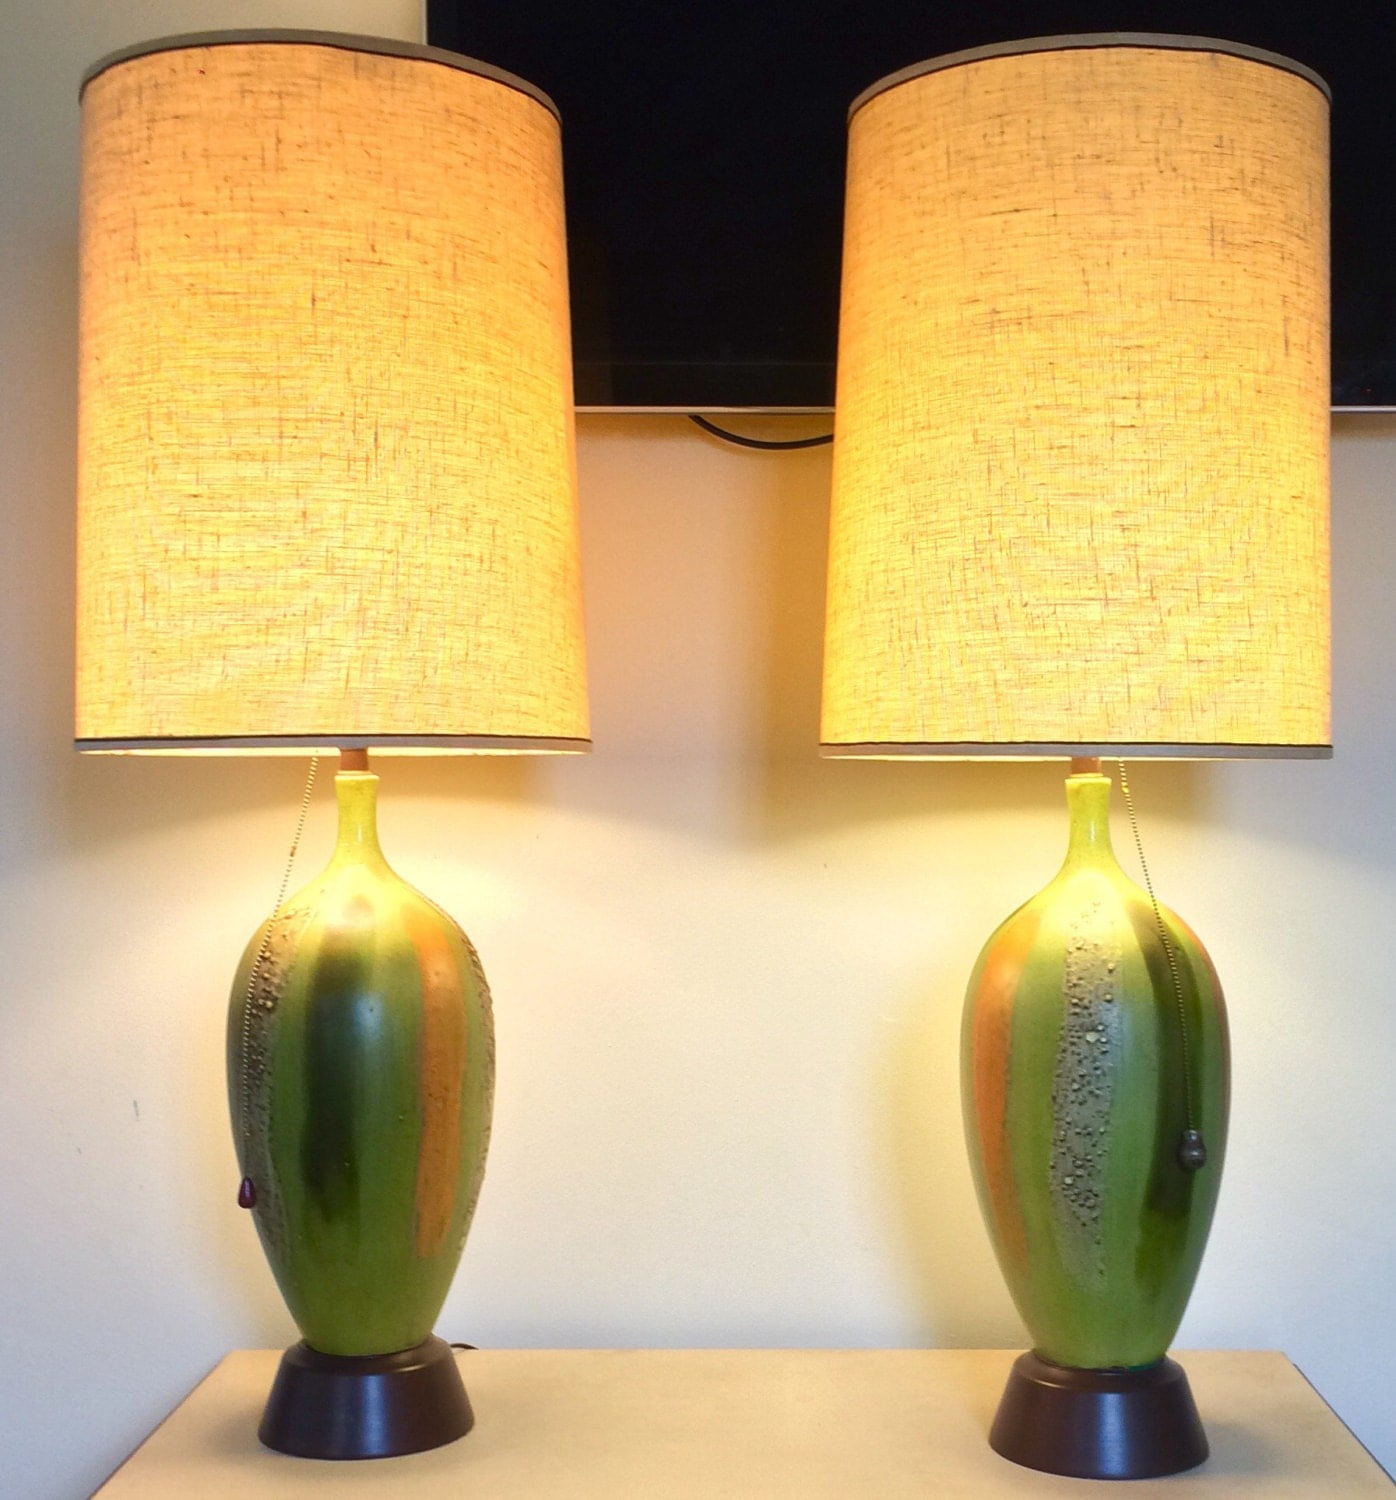 Danish mid century modern table lamps drip glazed retro 70s era danish mid century modern table lamps drip glazed retro 70s era in olive green orange and yellow located in chicago hip modern fun geotapseo Image collections